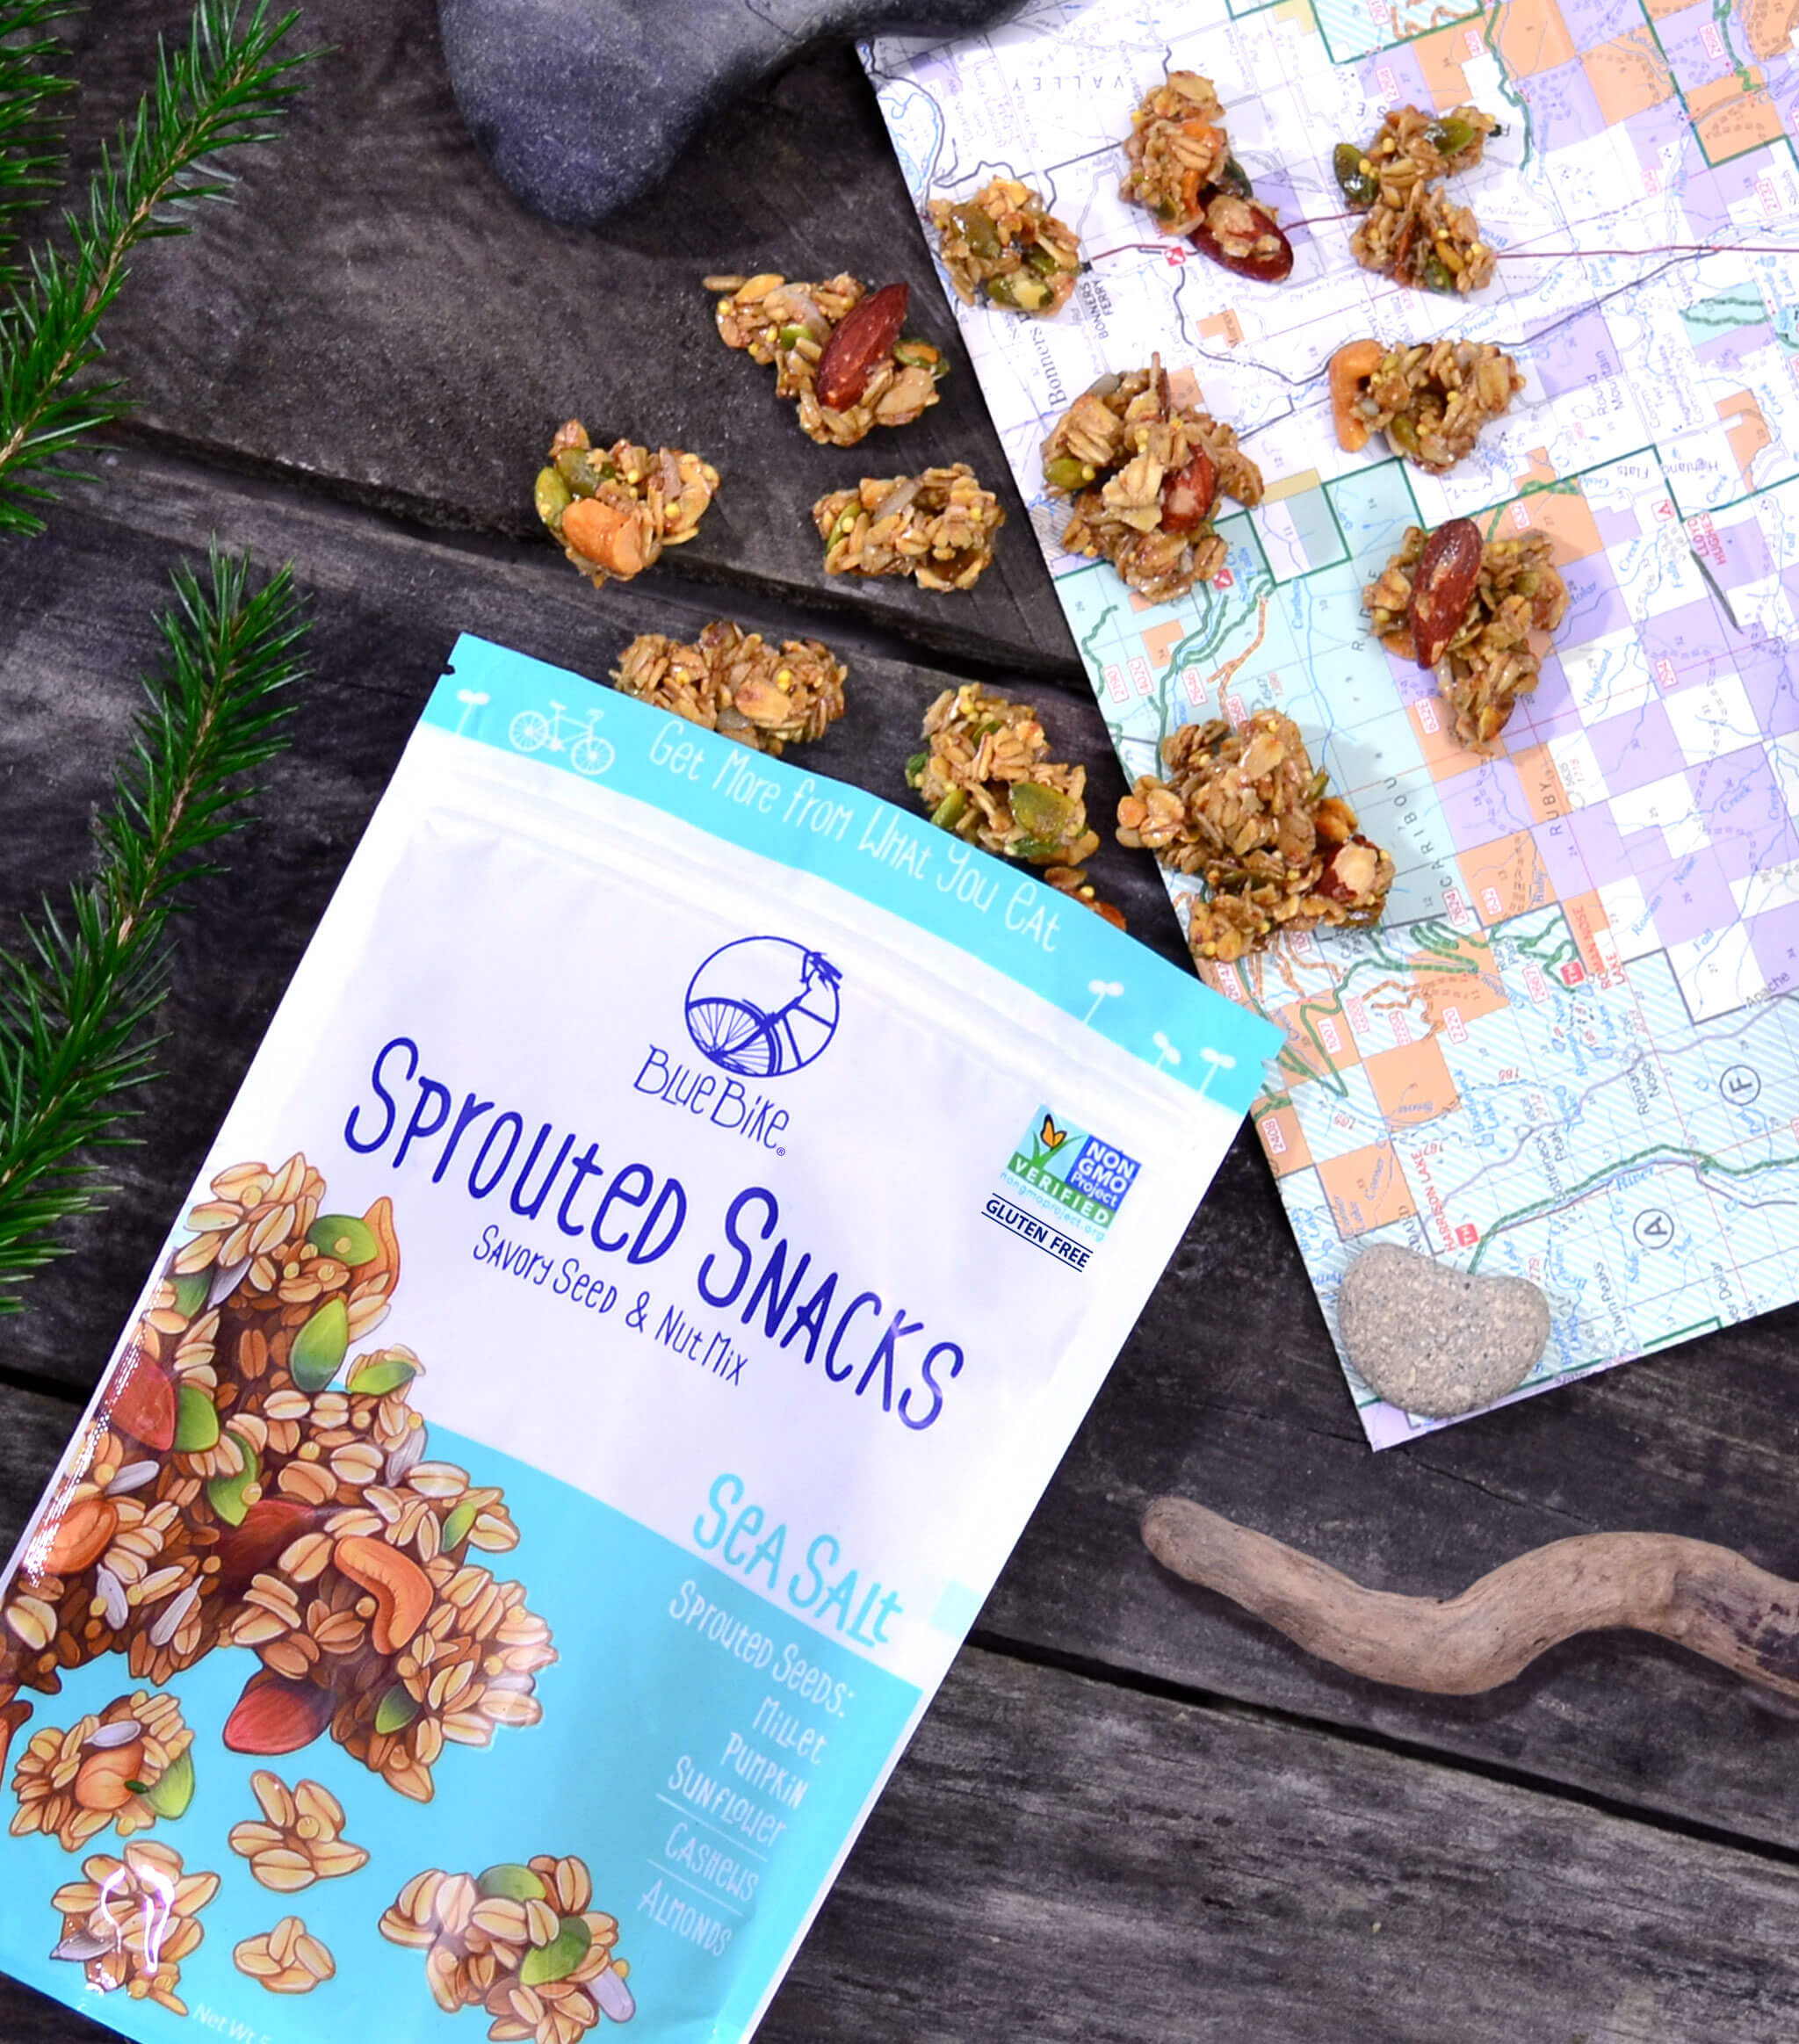 Sea Salt Sprouted Snacks falling onto hiking map